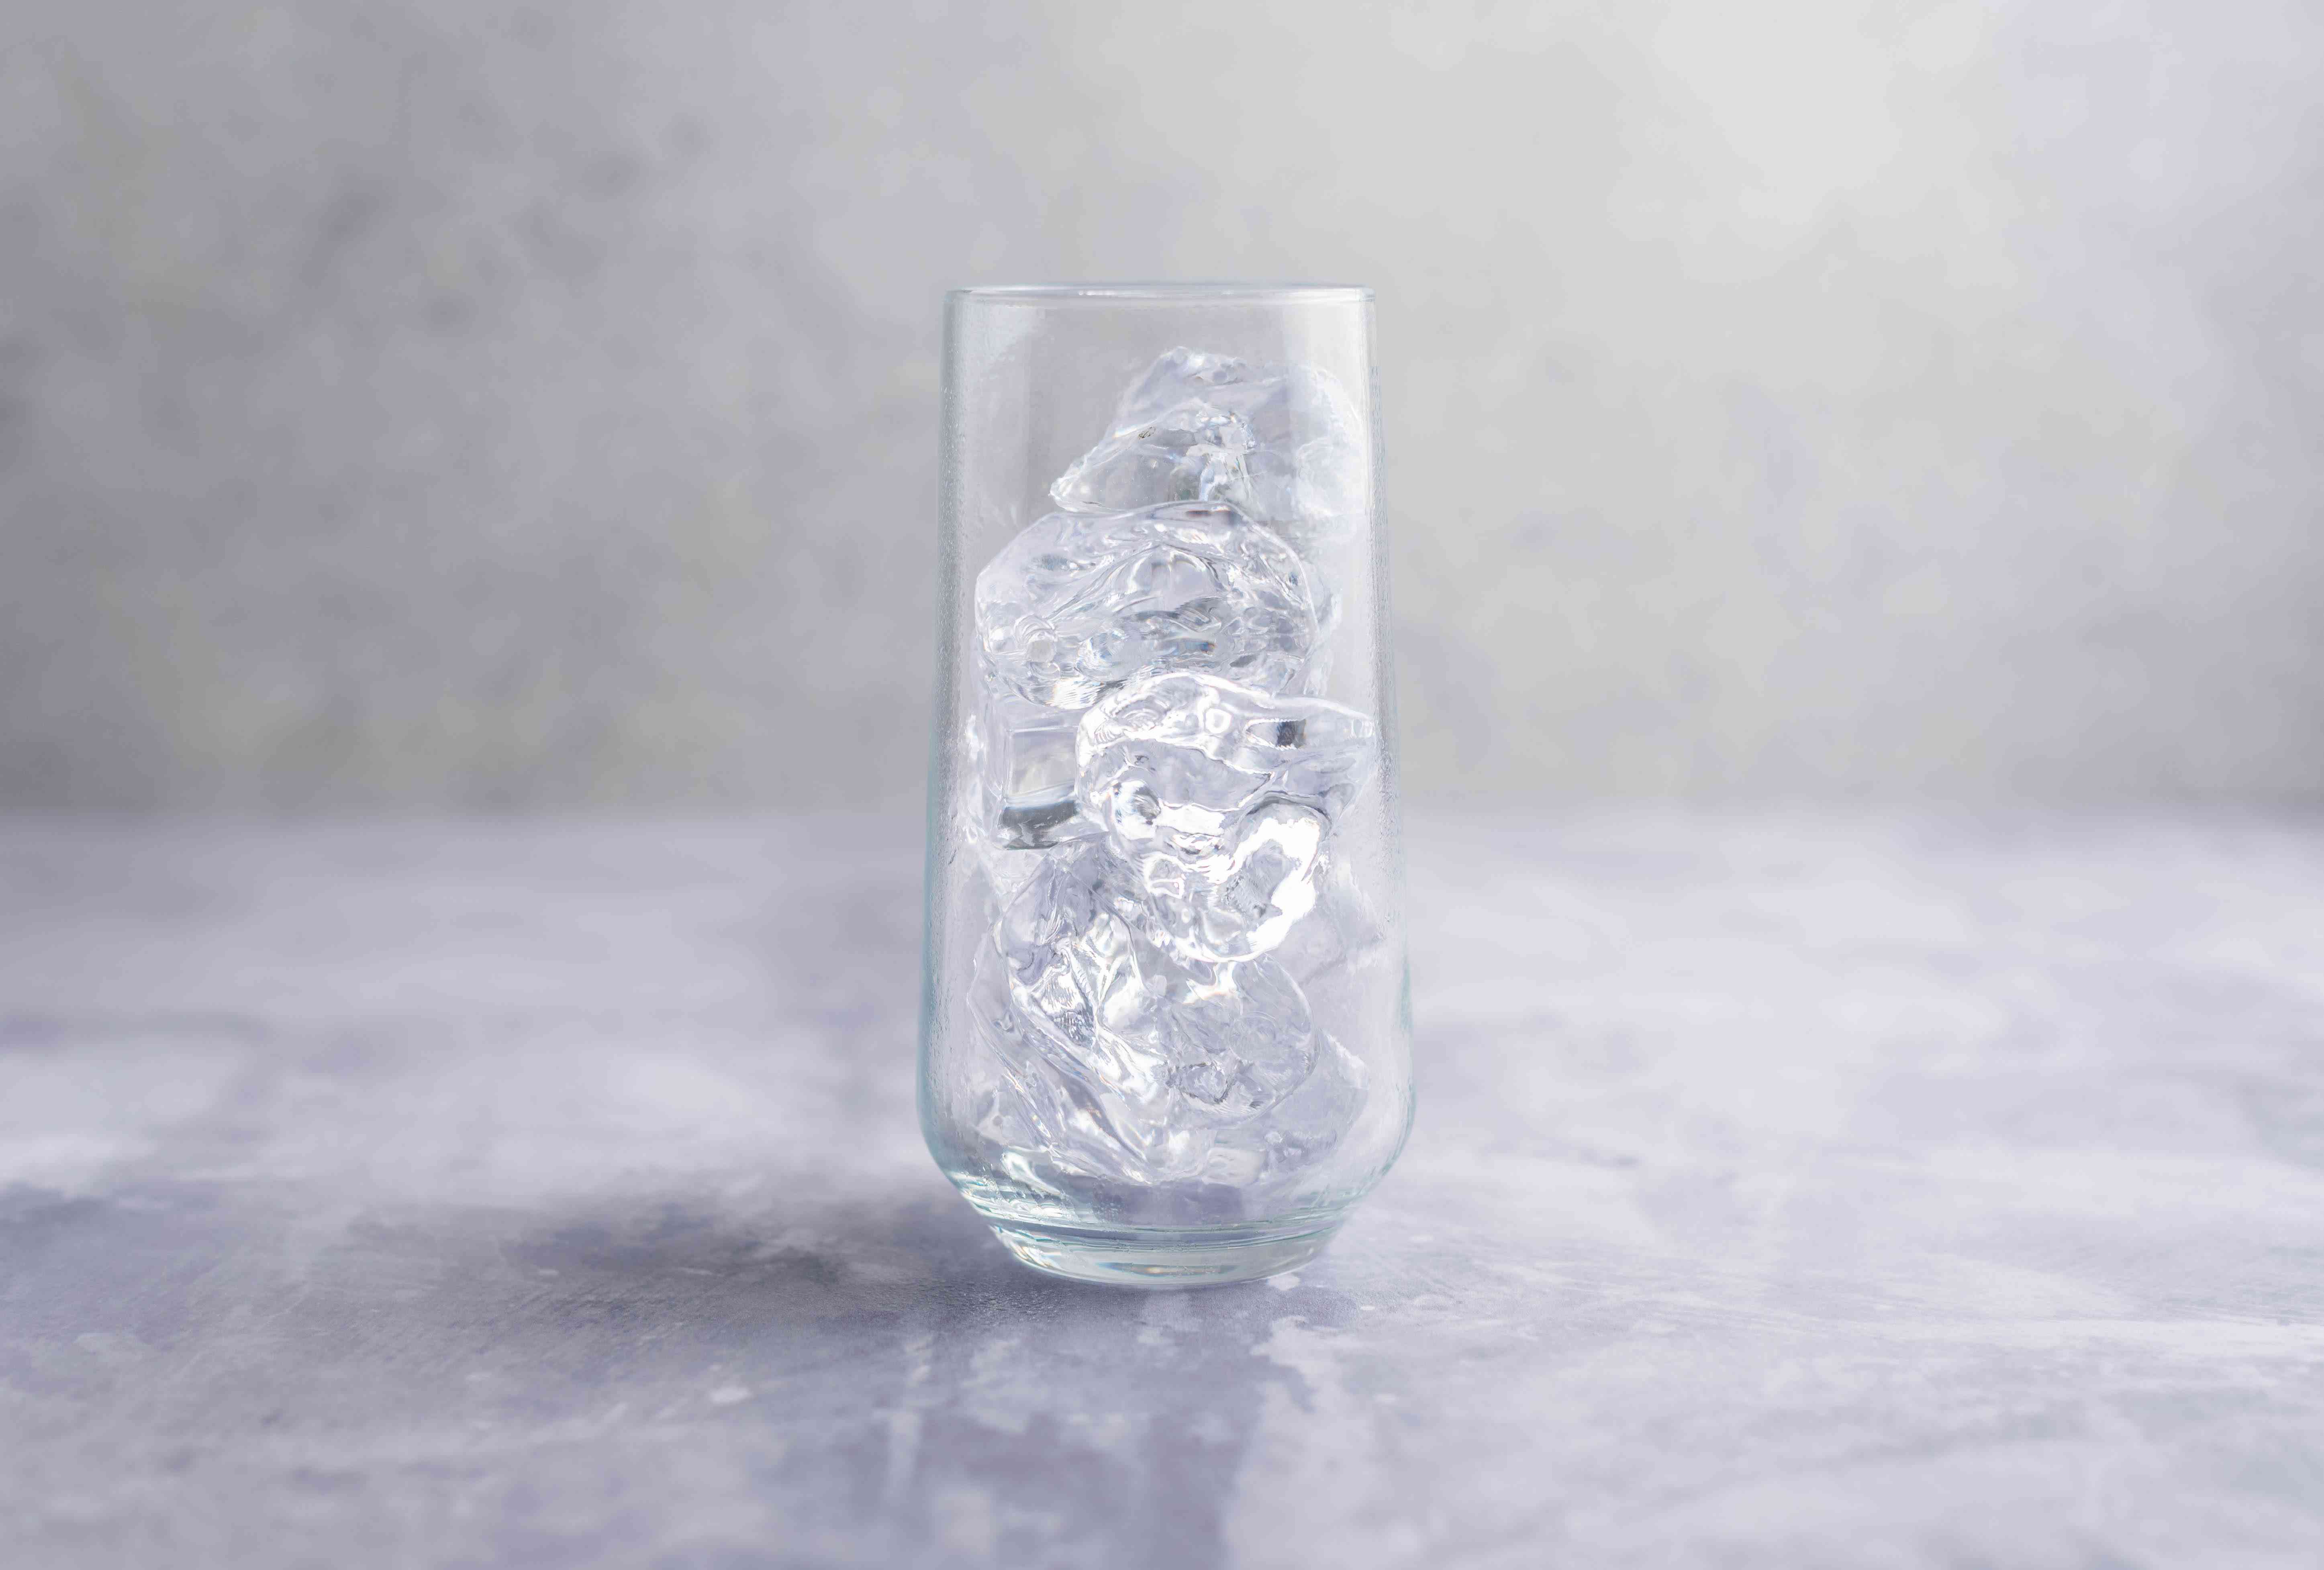 Highball glass filled with ice